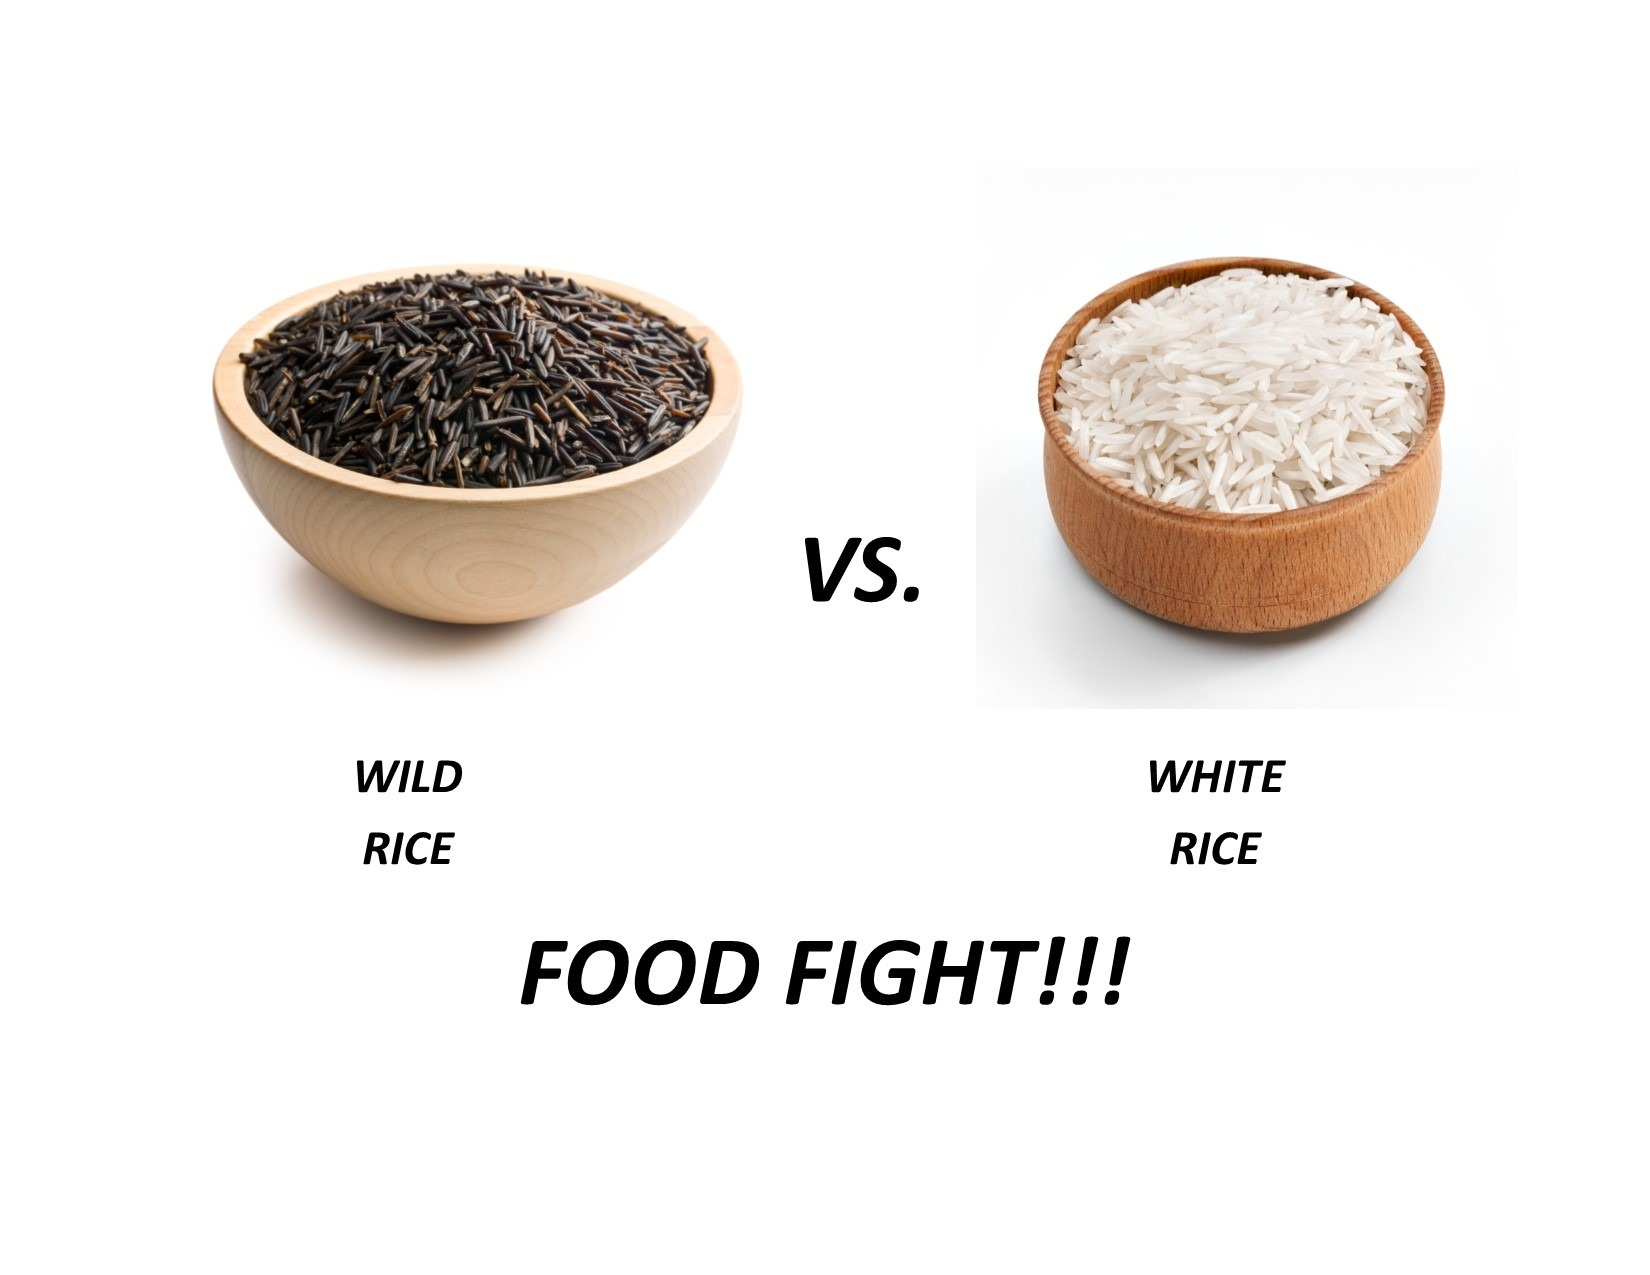 Wild vs White Rice